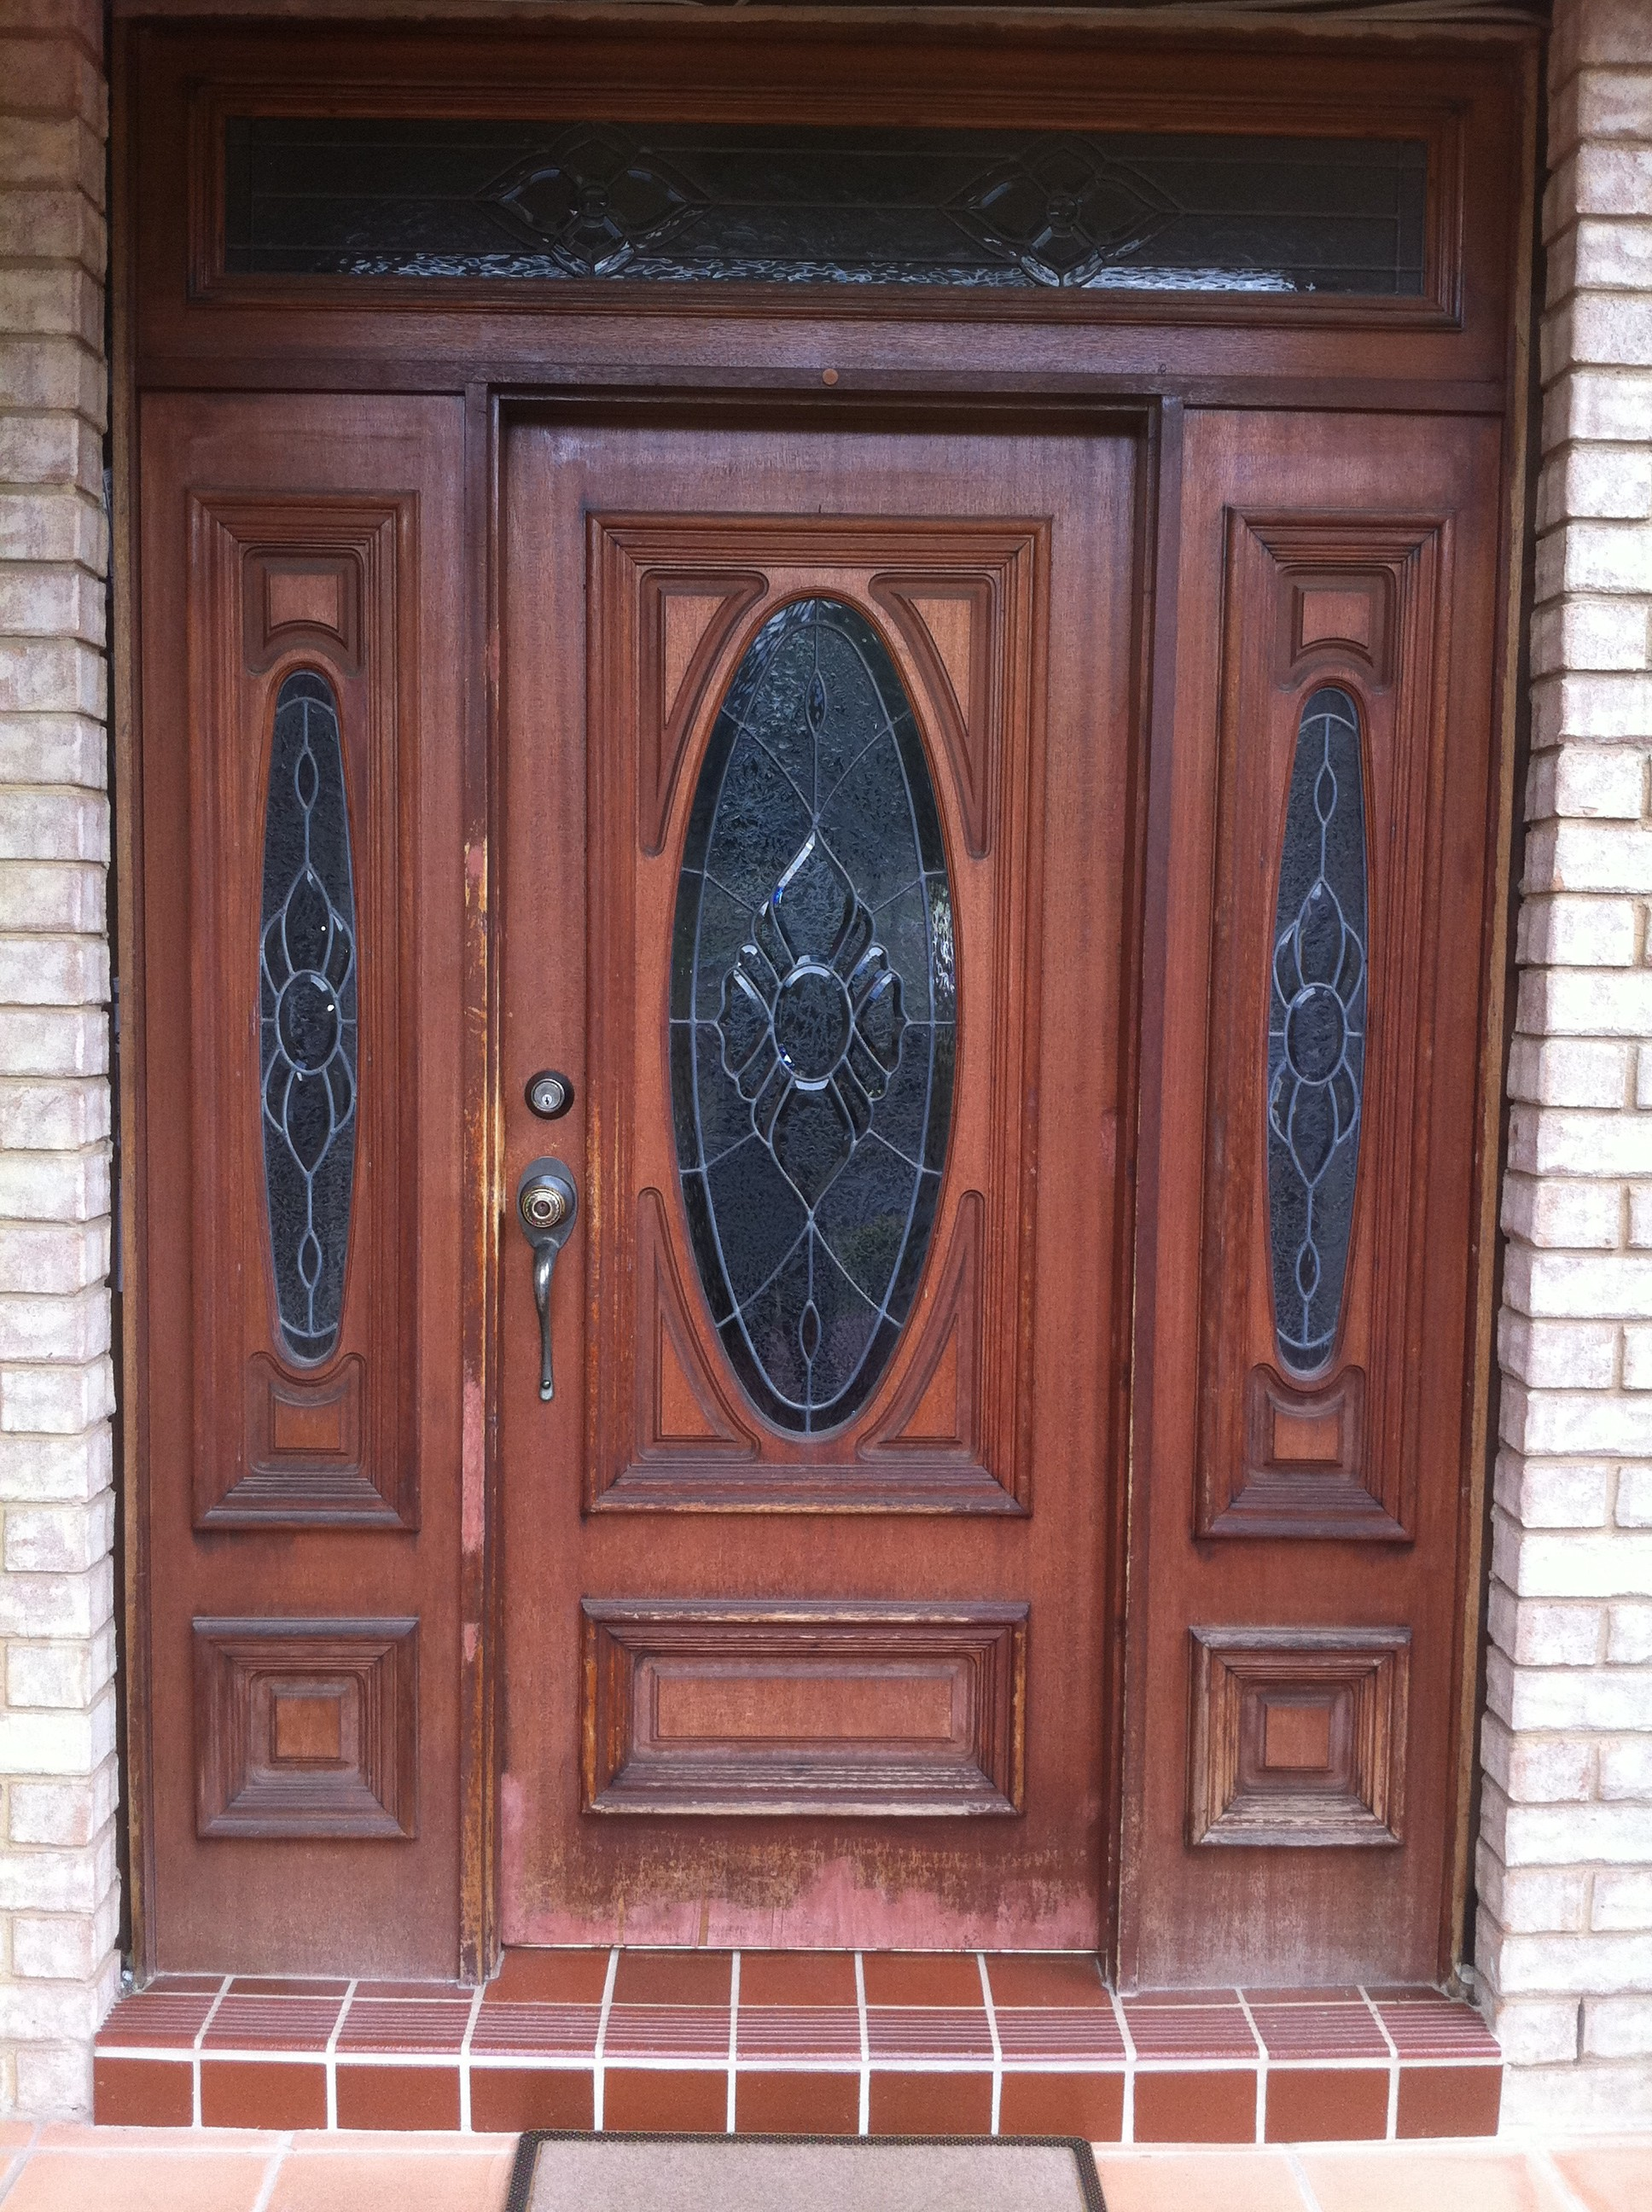 10a - Old Entry Doors